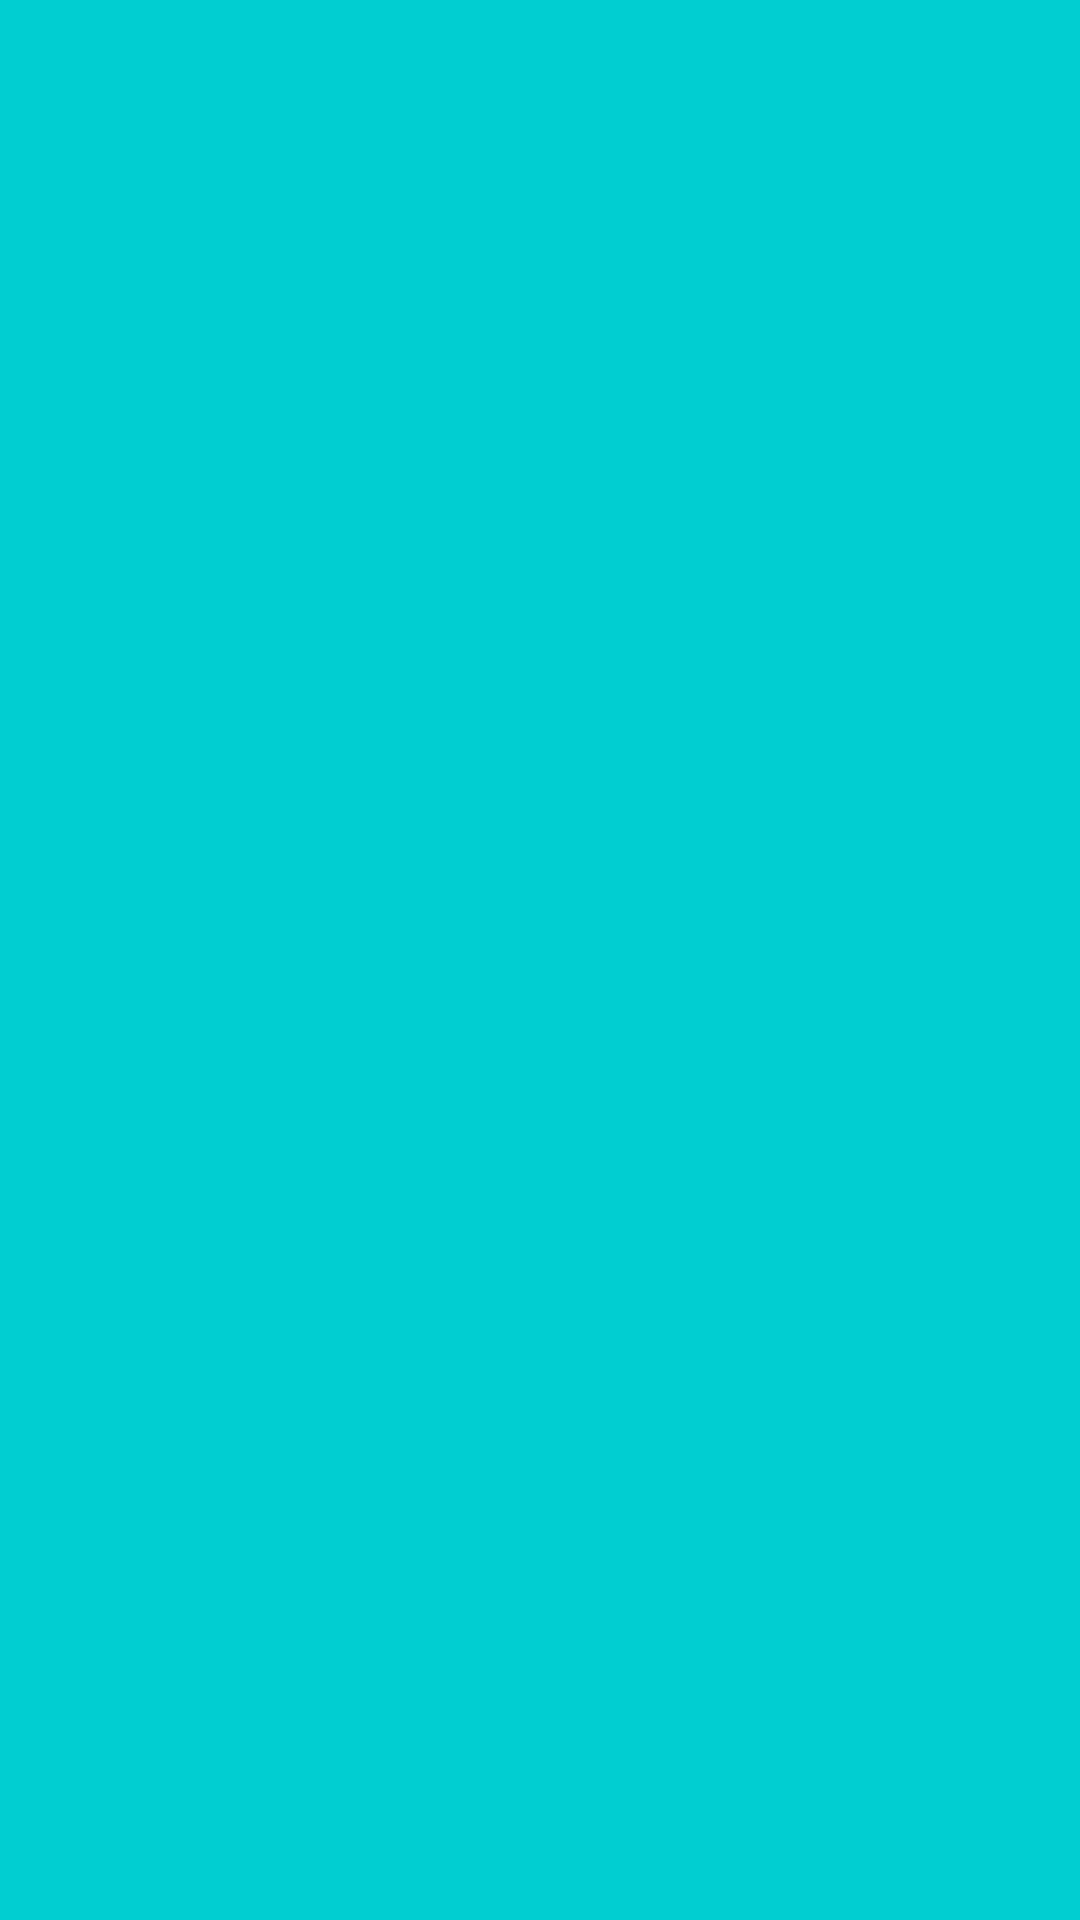 1080x1920 Dark Turquoise Solid Color Background